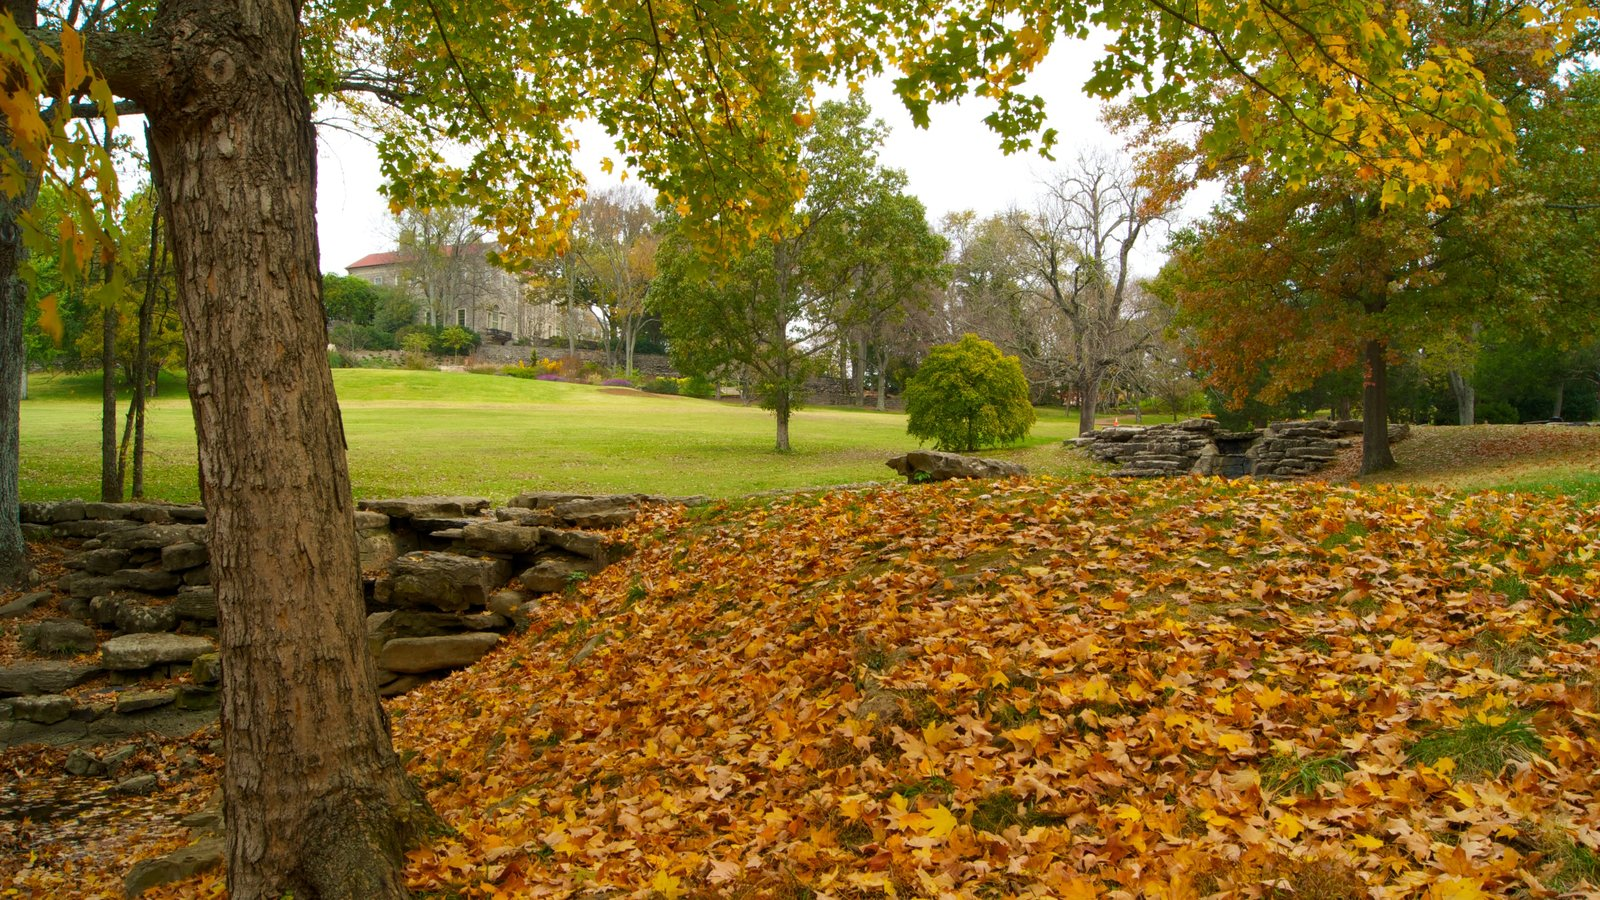 Cheekwood Botanical Gardens And Museum Of Art Featuring A Park, Landscape  Views And Autumn Leaves